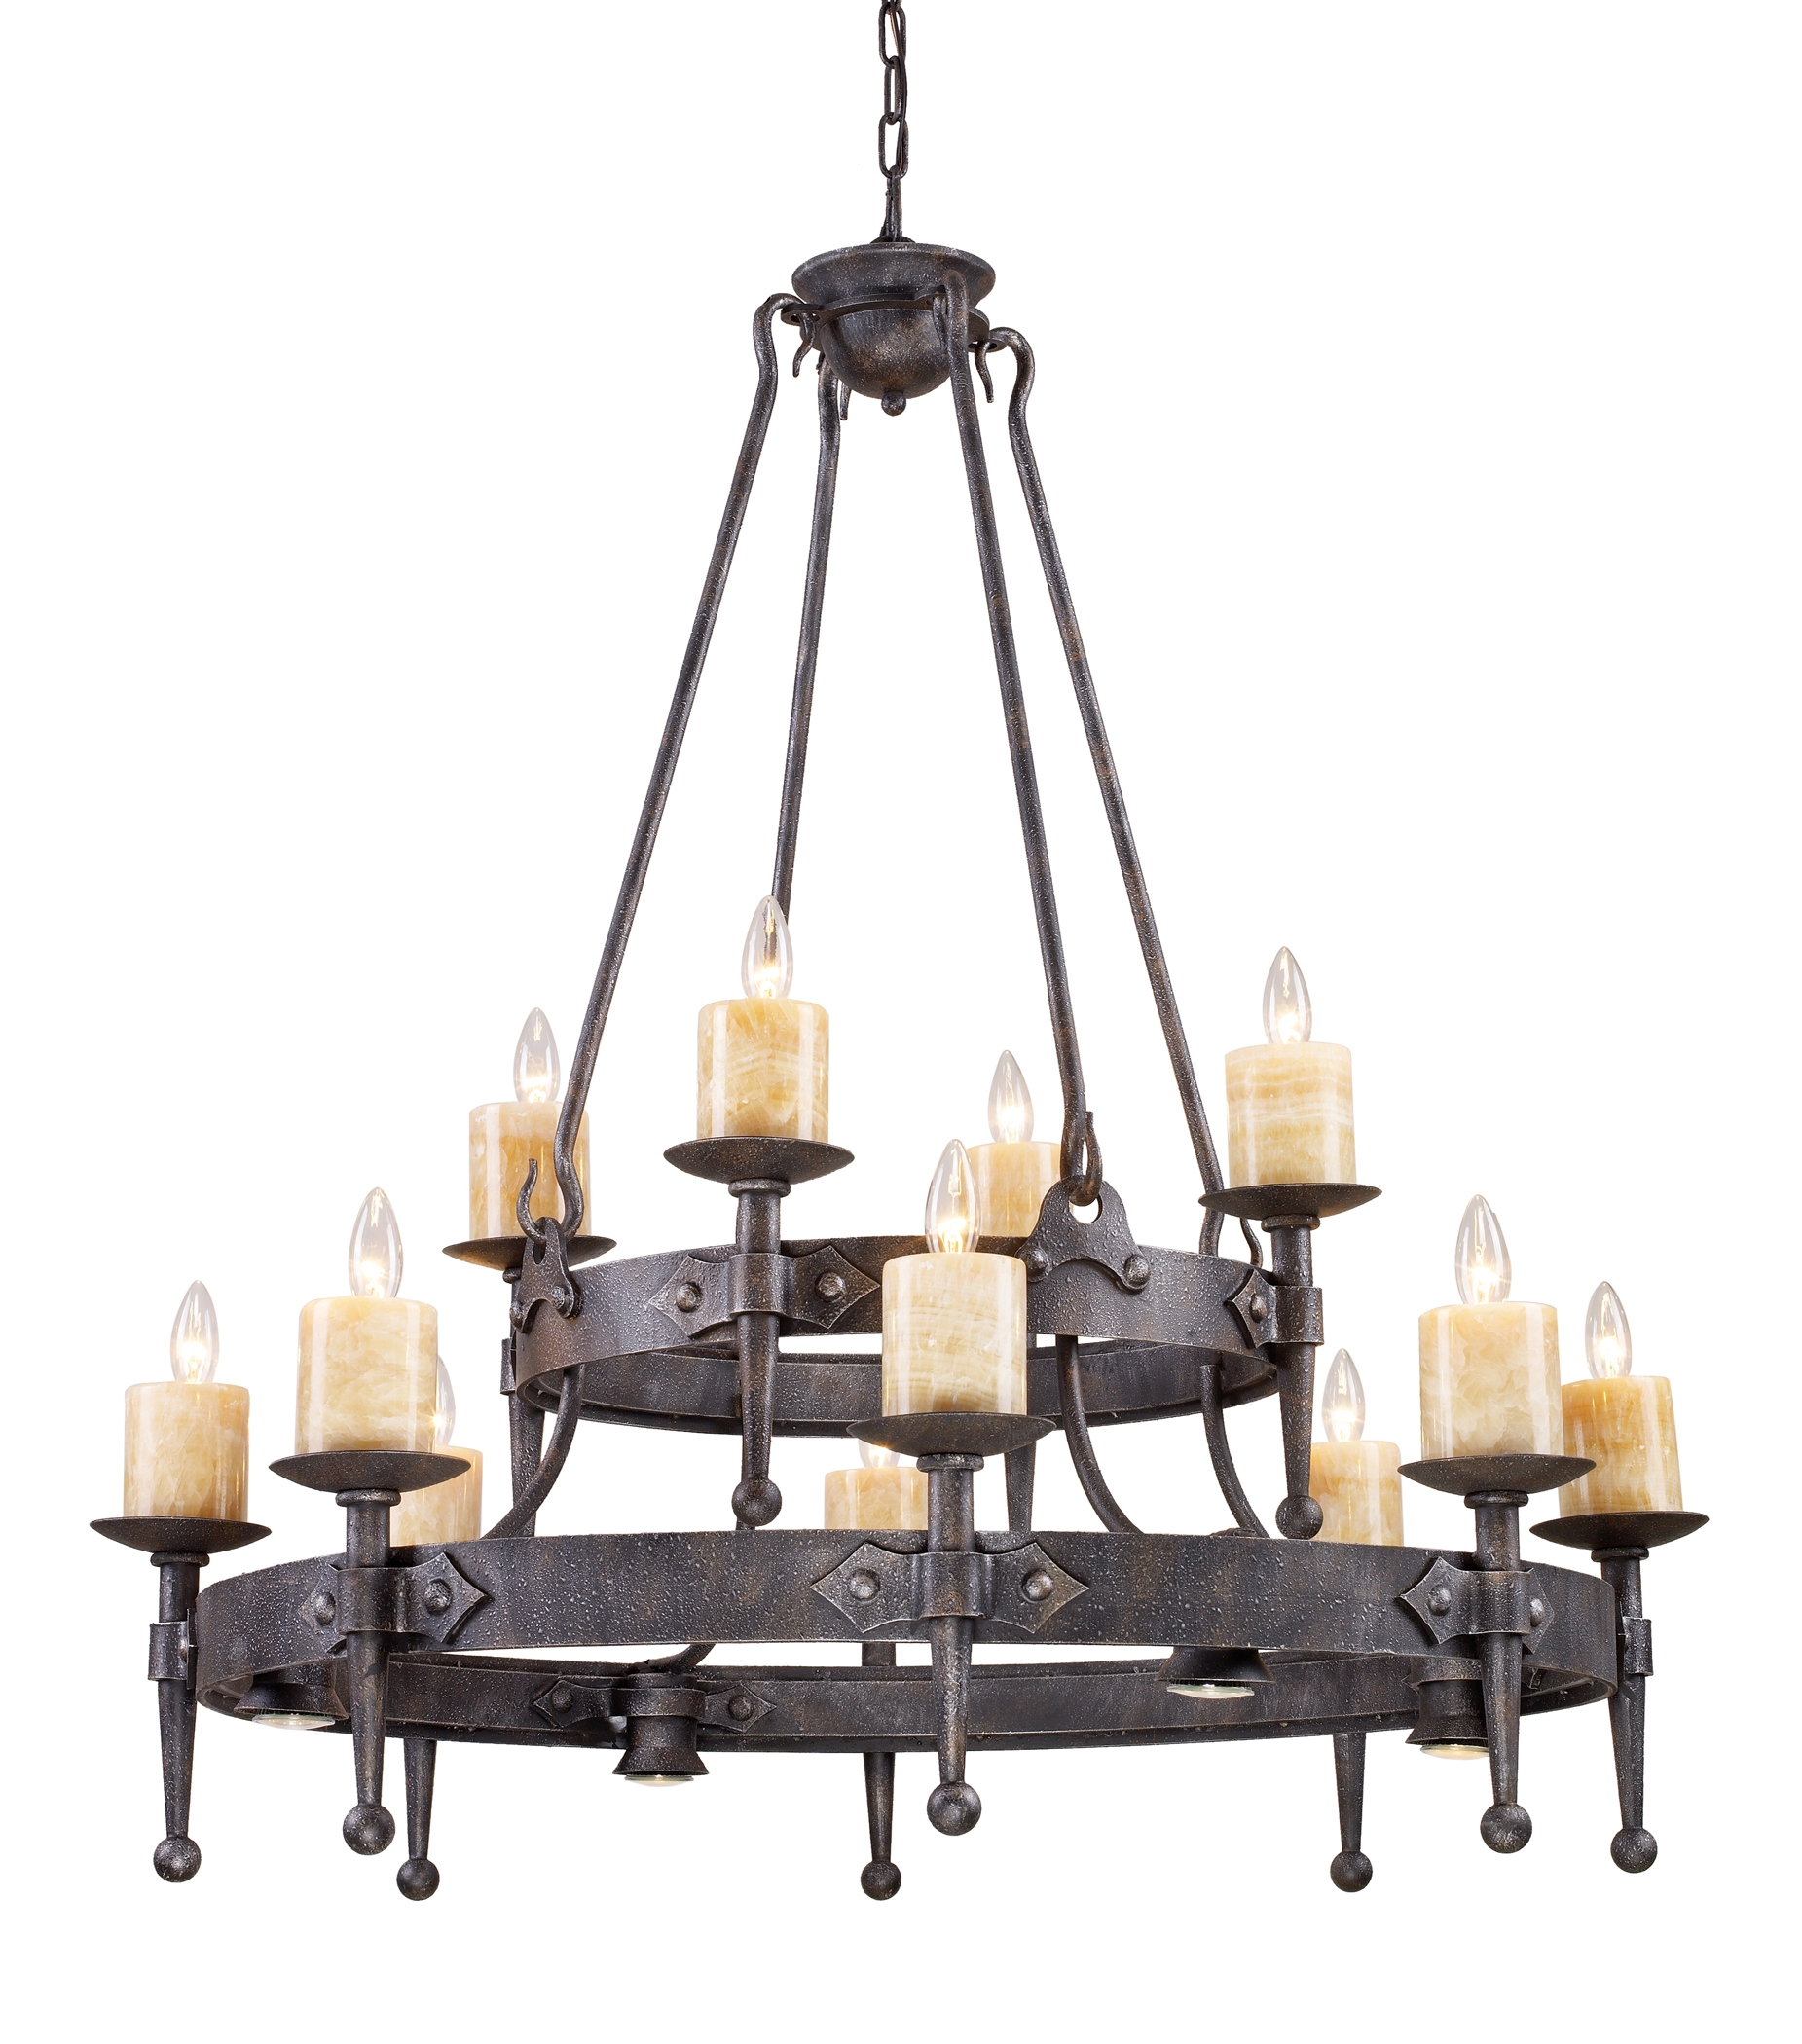 Wrought Iron Chandeliers Rustic Magnificent On Modern Home Decor For Large Iron Chandeliers (View 12 of 15)